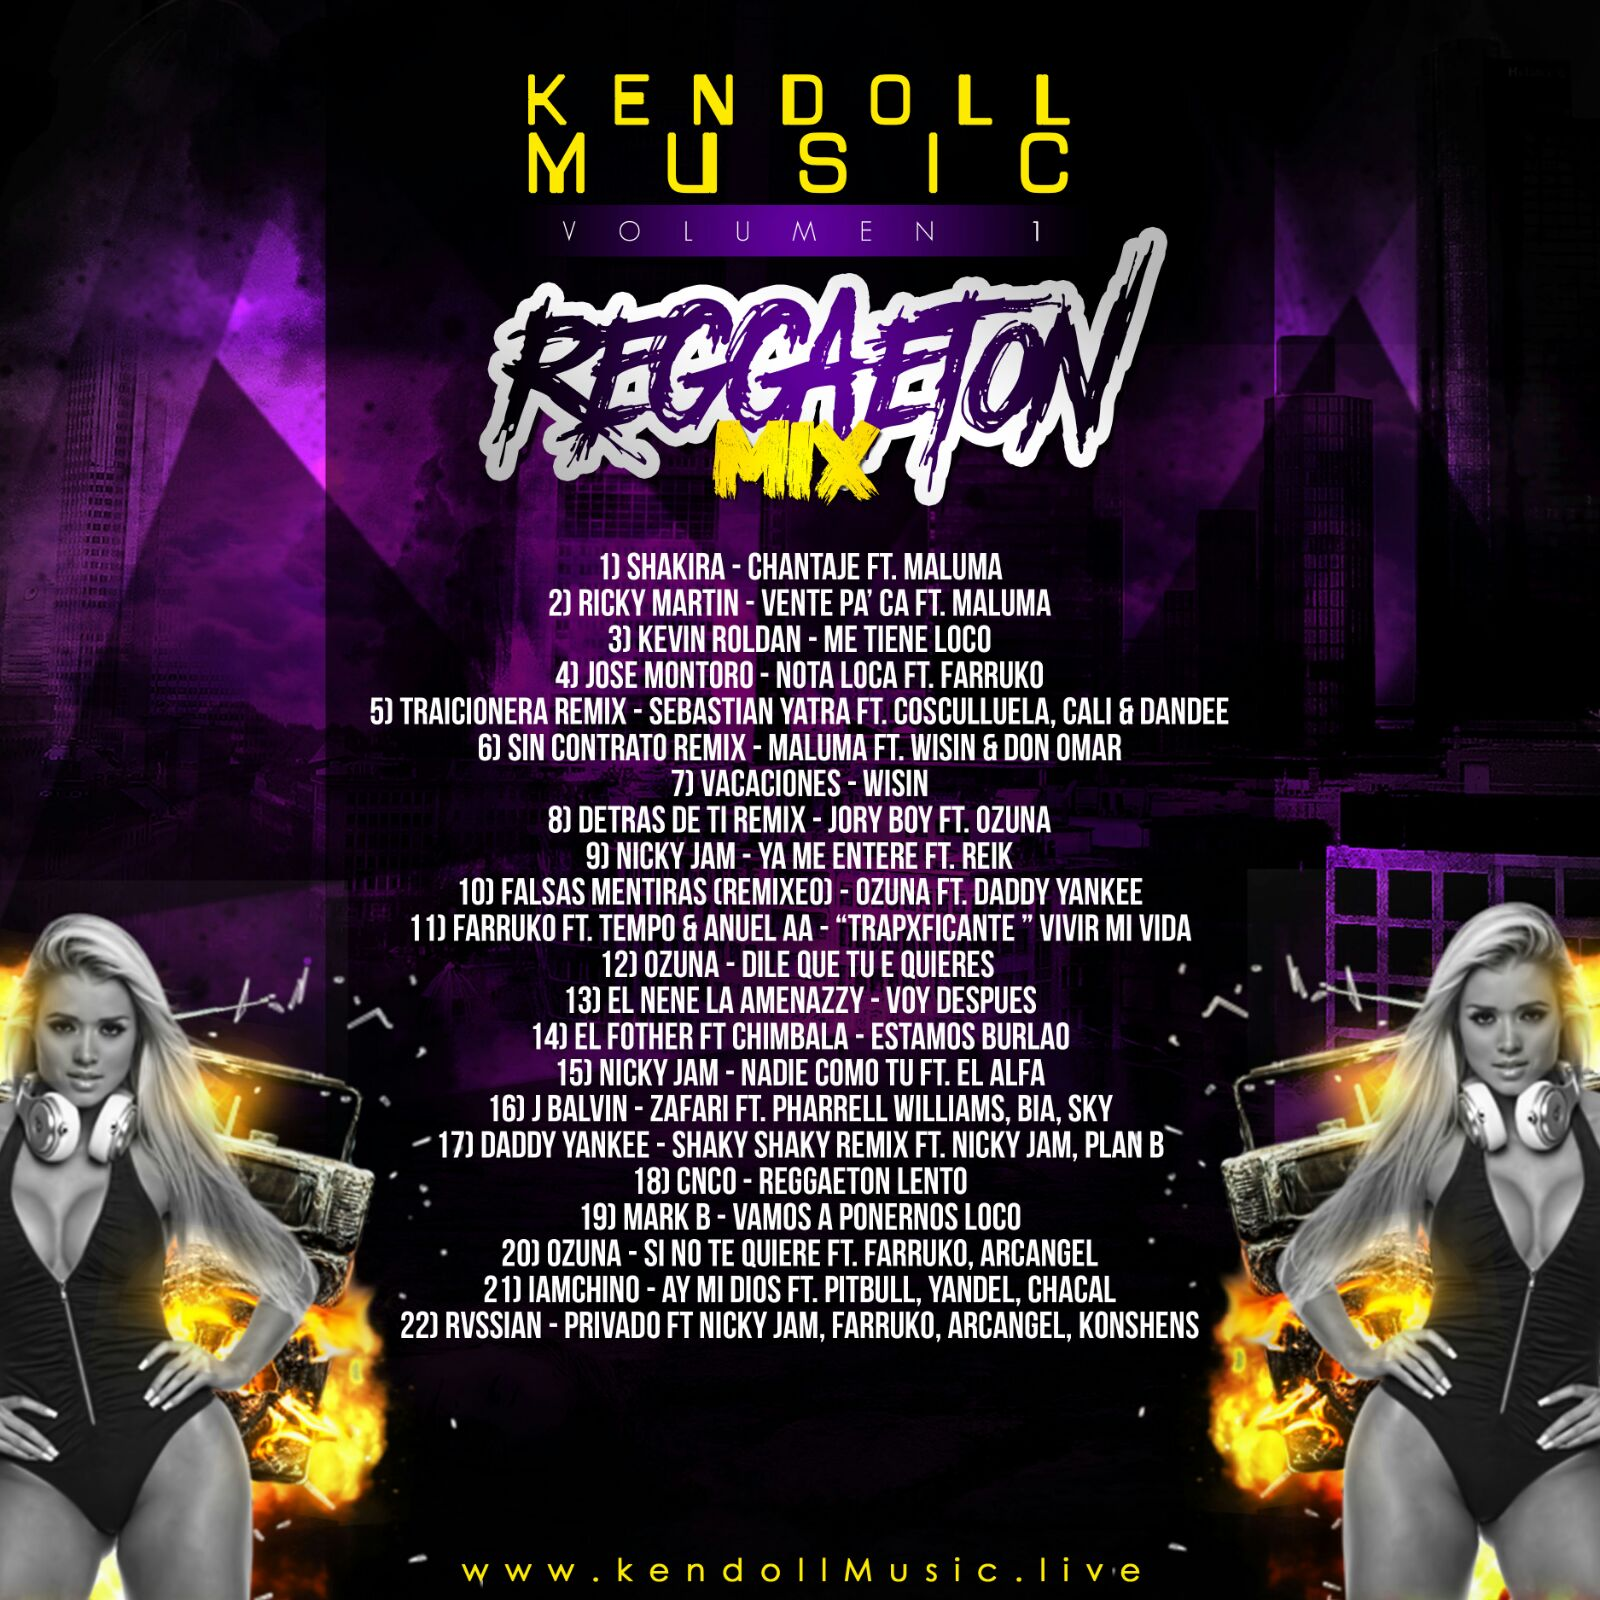 Descarga Cds Kendoll Music Vol 1 Reggaeton Mix 2016 17